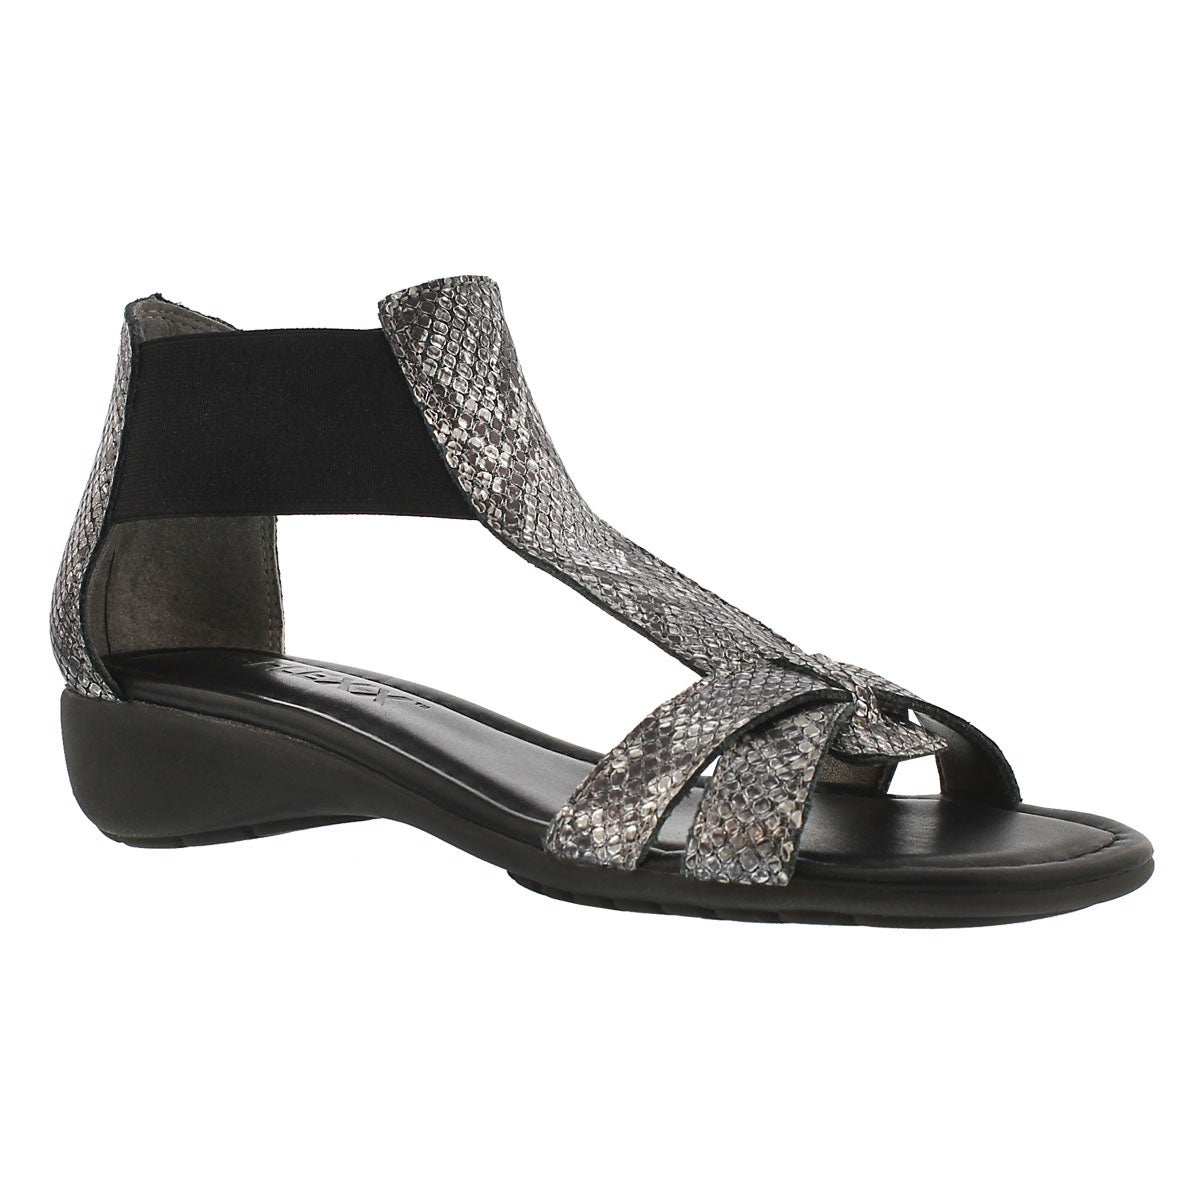 Lds Band Together silver printed sandal